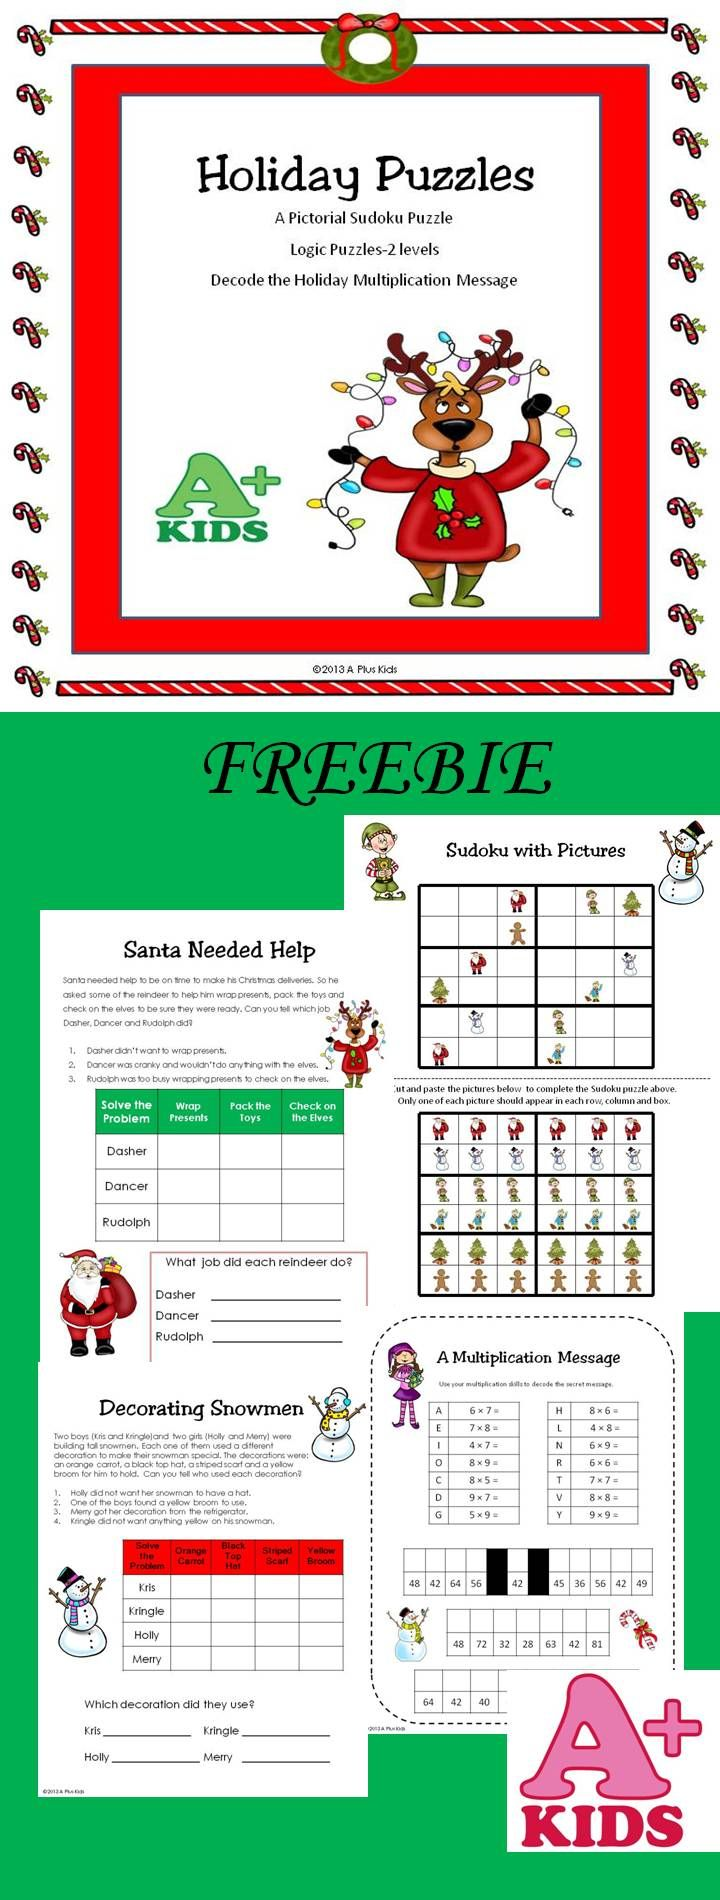 I designed this product to thank everyone for shopping at A Plus Kids. It contains 4 different puzzles: one pictorial Sudoku puzzle, 2 logic puzzles (on 2 different levels), and one multiplication holiday message (use multiplication to decode the holiday message).